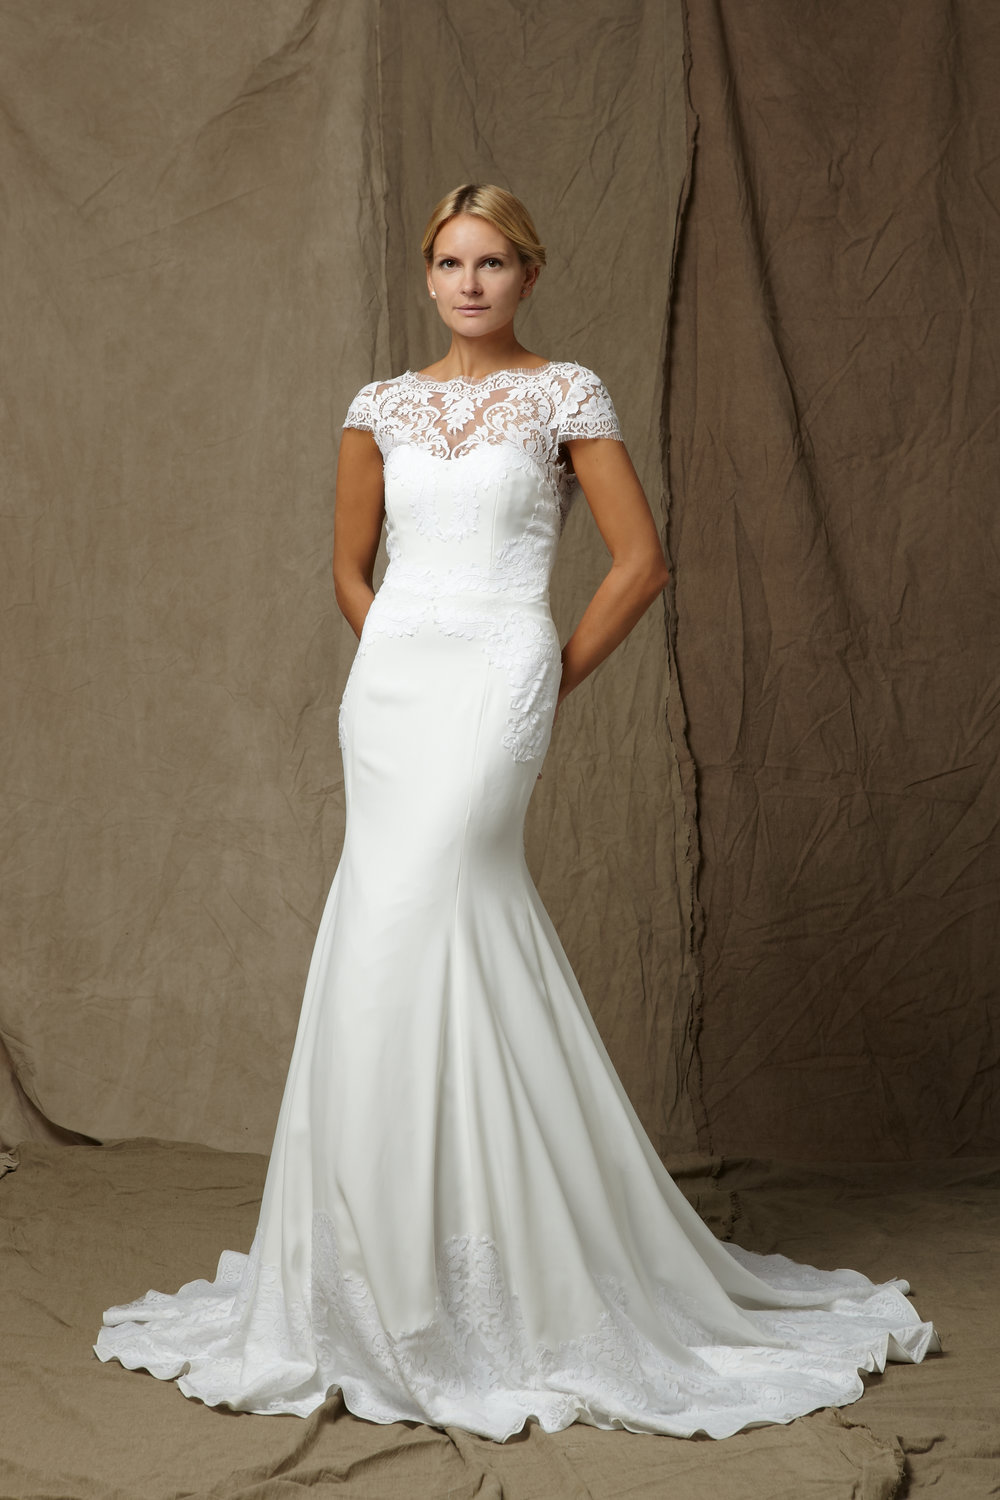 THE SPRING $5,995 70% OFF,  NOW $1,798.50  SIZE 10